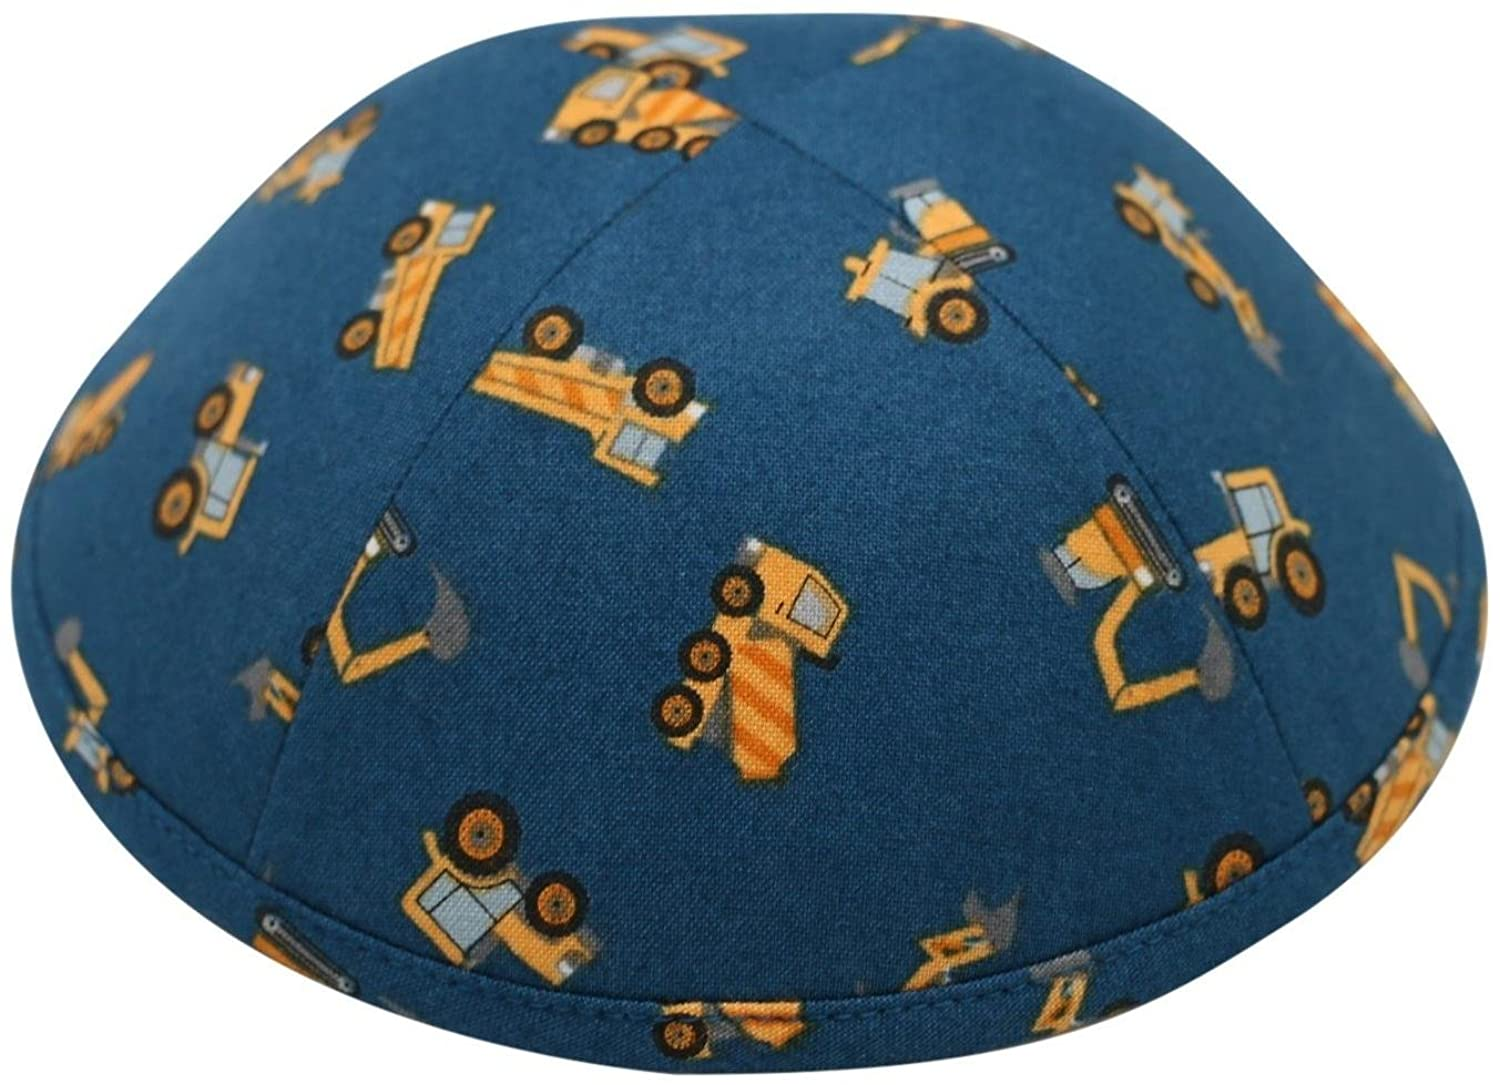 hot iKippah Boys Rock and Dirt Yarmulka